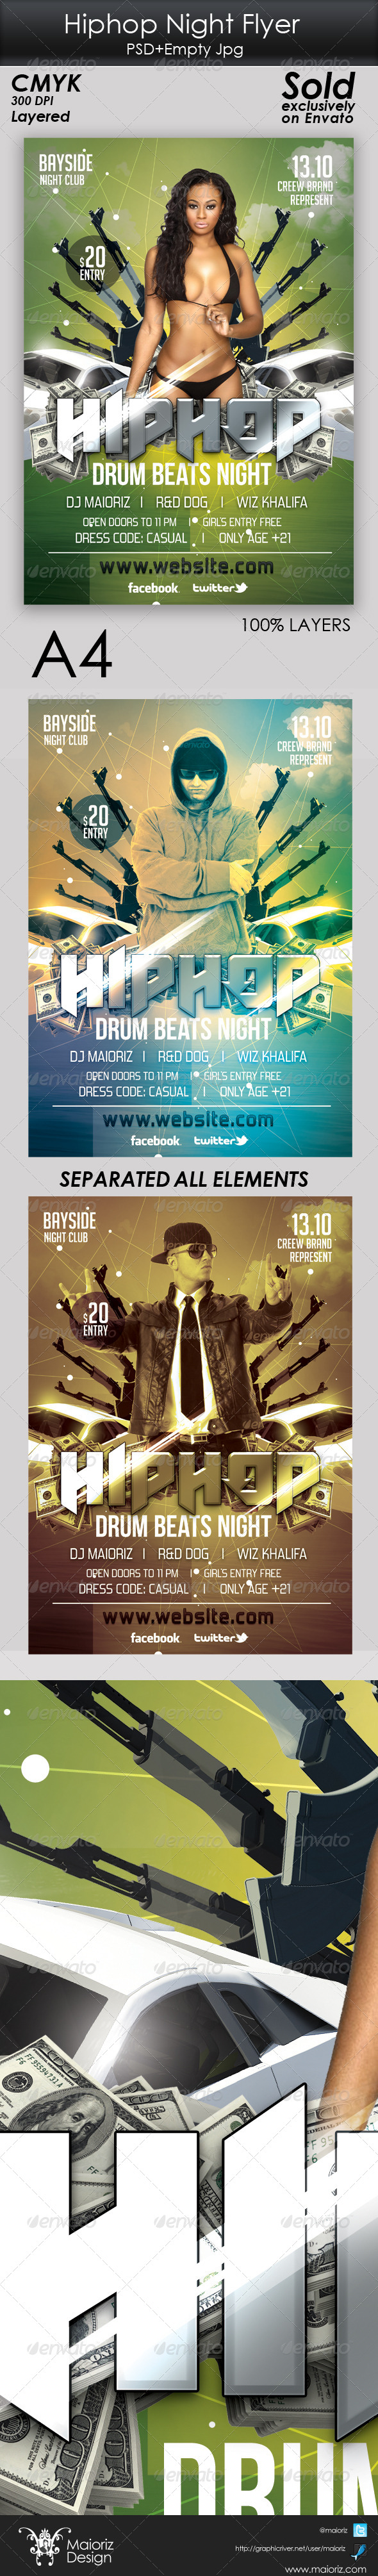 Hiphop Night Flyer Template - Clubs & Parties Events